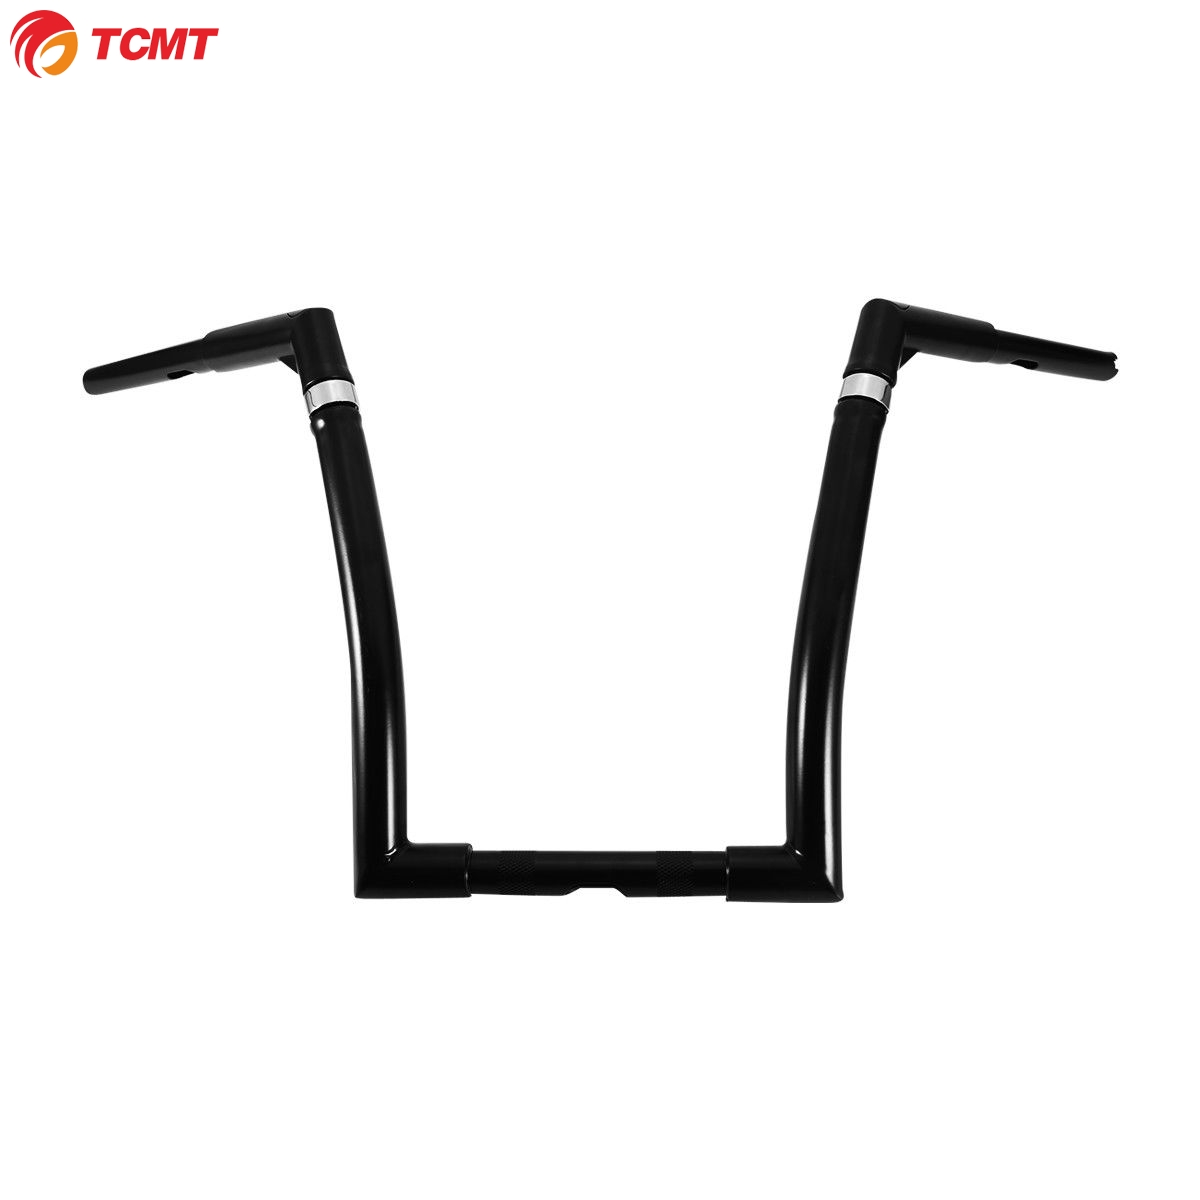 TCMT 16 Rise 1.25 Ajustable Ape Handlebar Fits For Harley Sportster XL Forty-Eight 48 Dyna